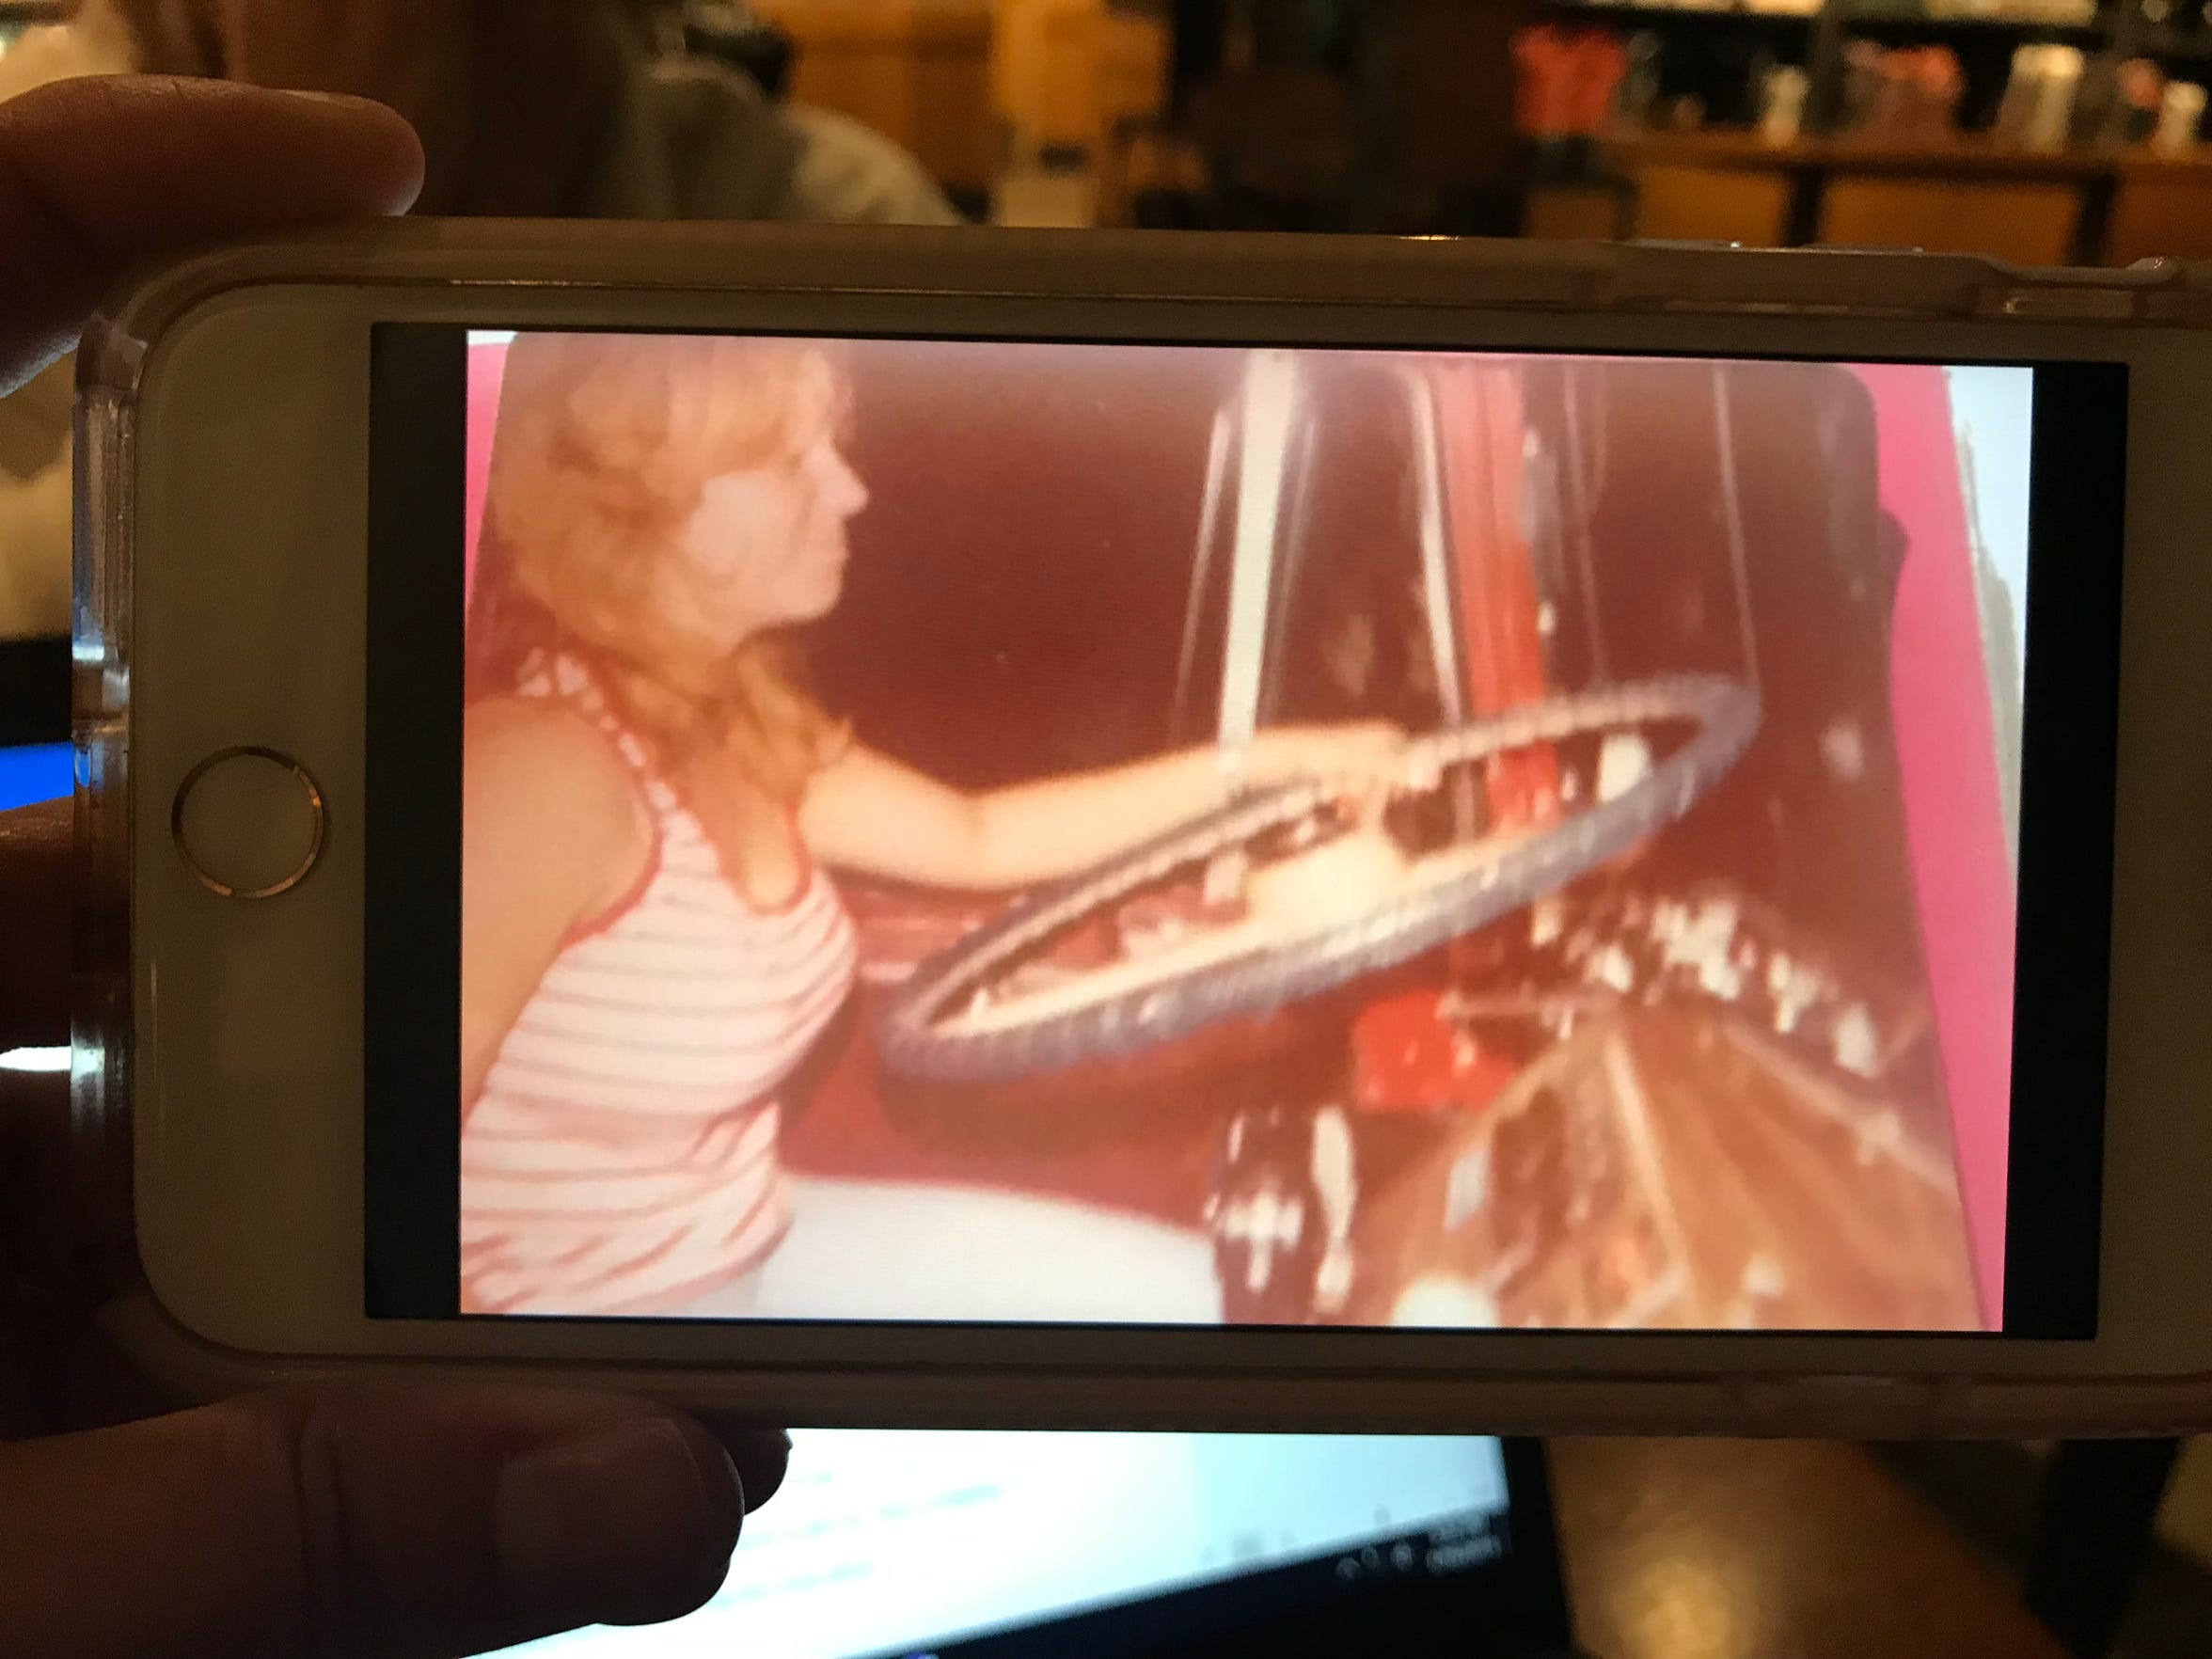 Mary Ann Sharp learning to drive a truck as a teenager in the 1970s.